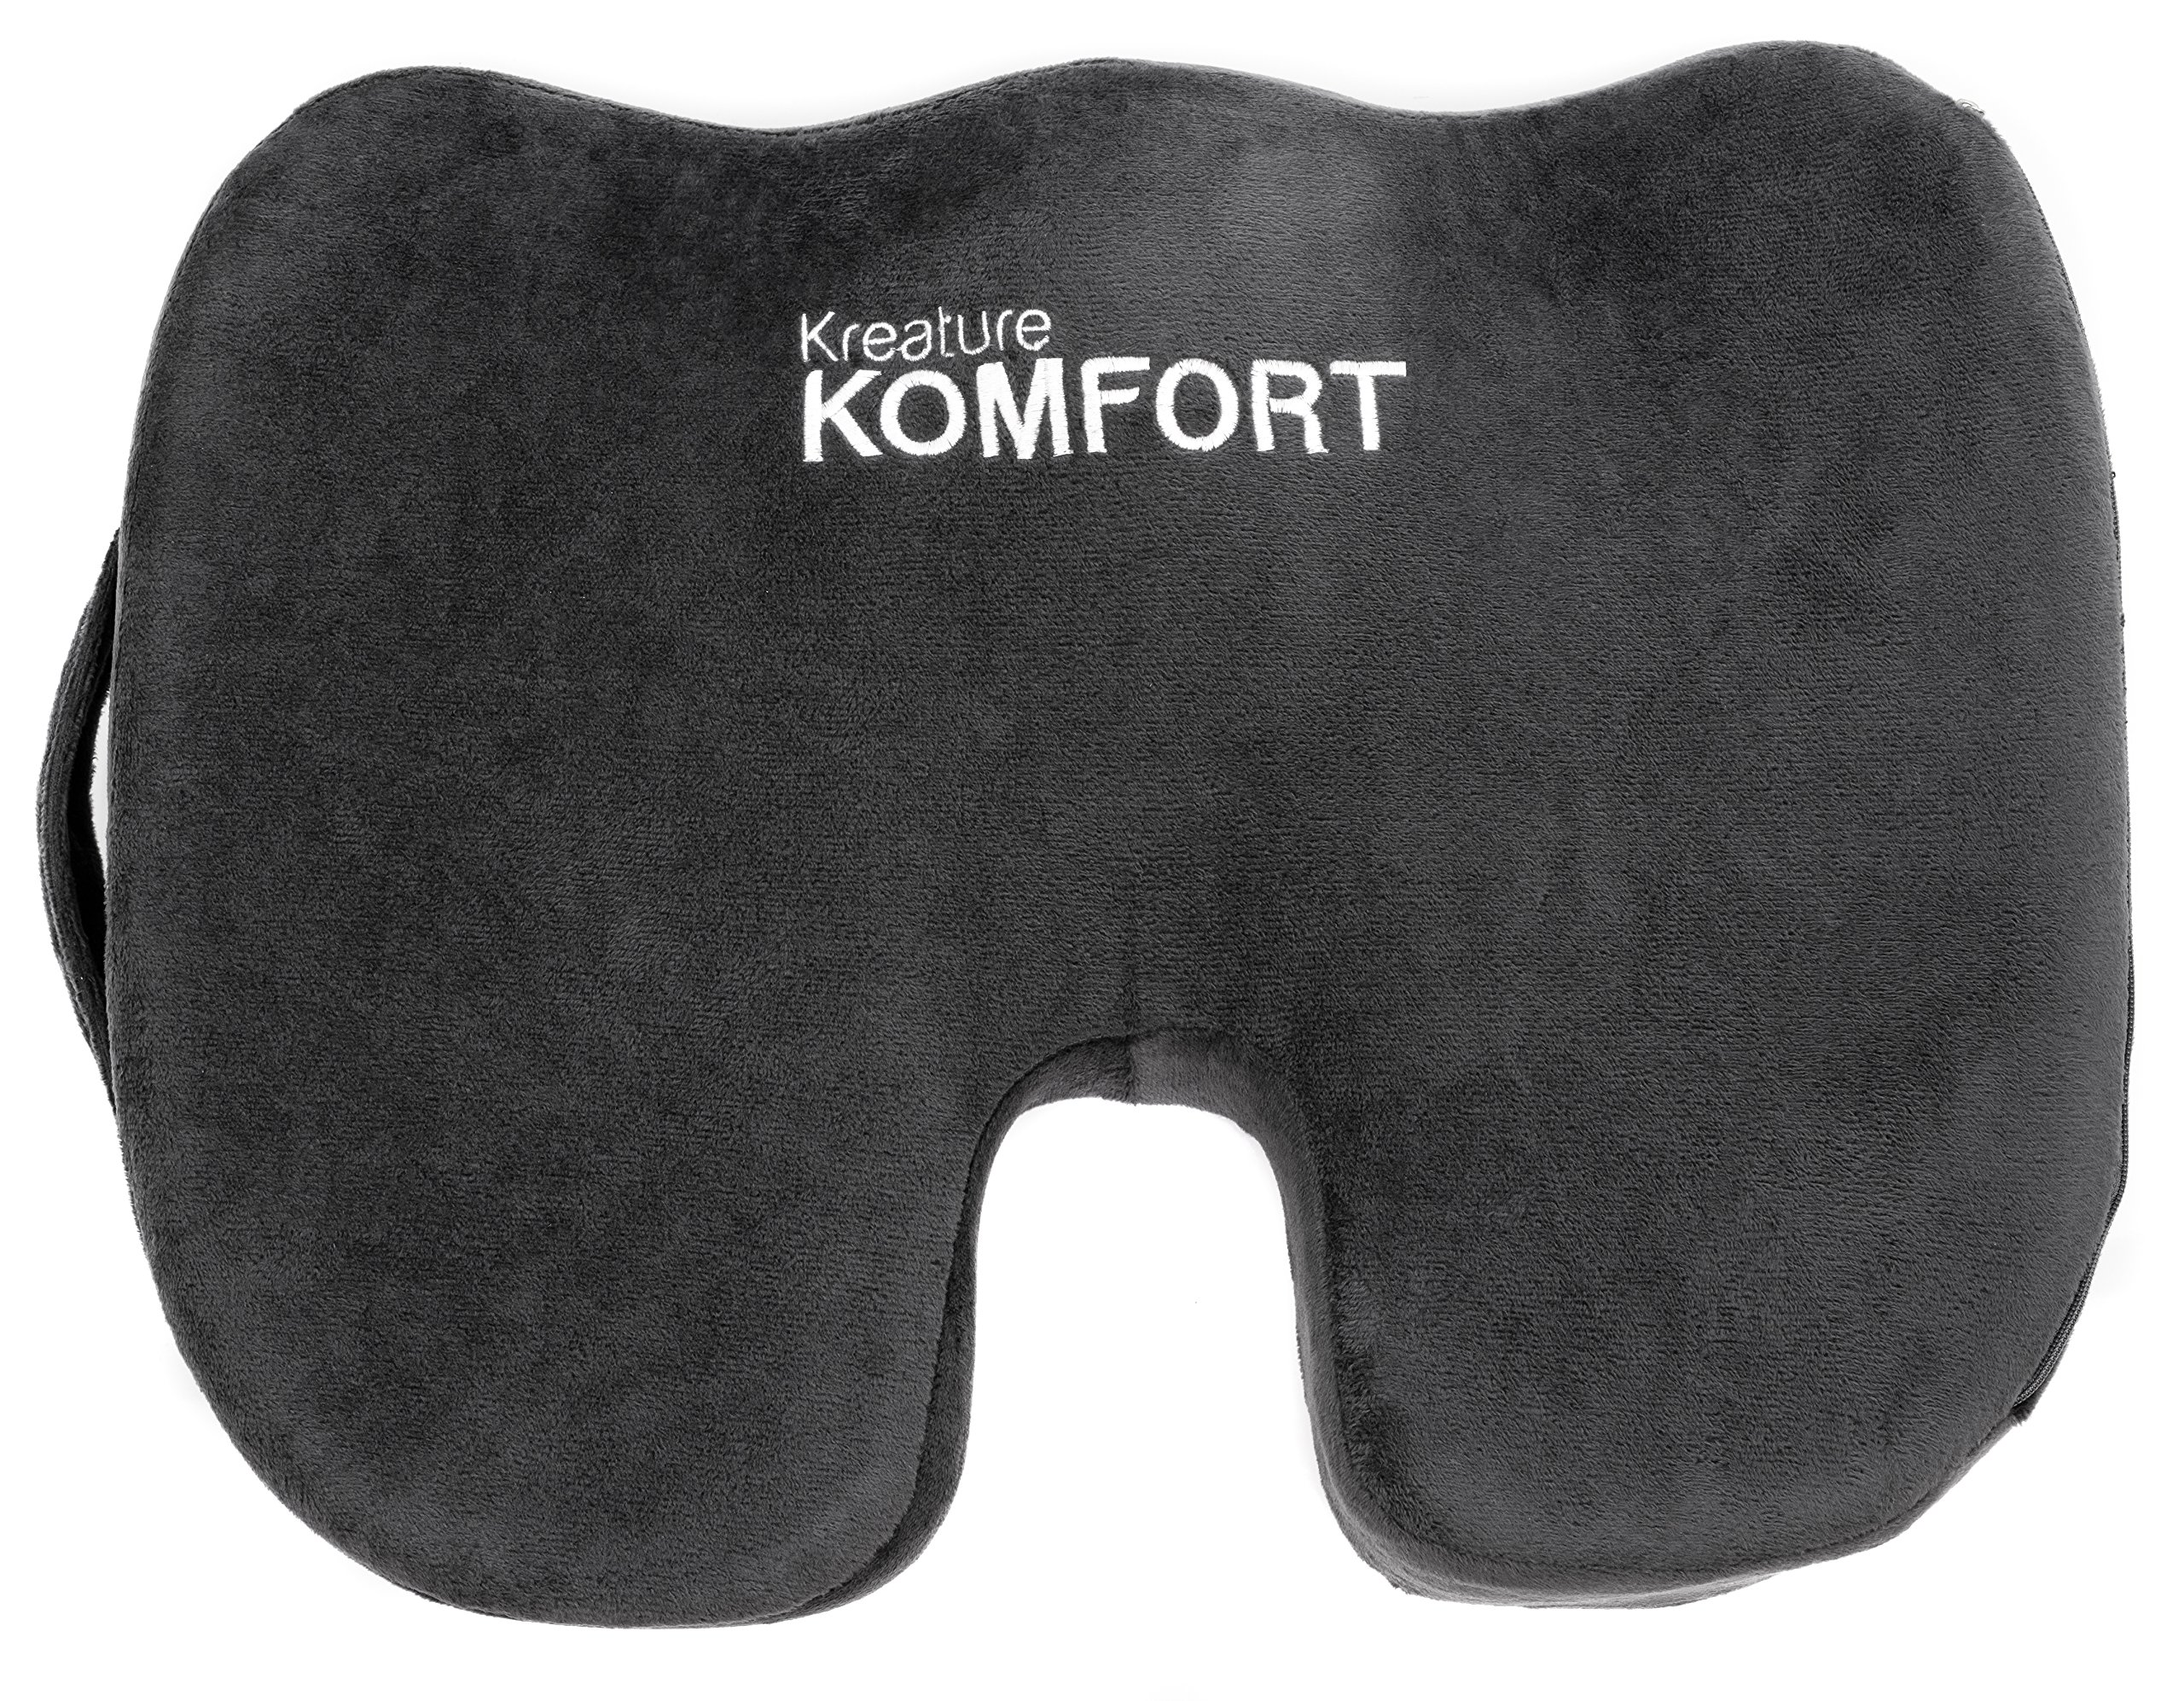 Kreature Komfort Orthopedic Memory Foam Seat Cushion, Relieves Coccyx Pain, Spine Issues, Stenosis, Tailbone, Back Aches, and Posture Issues